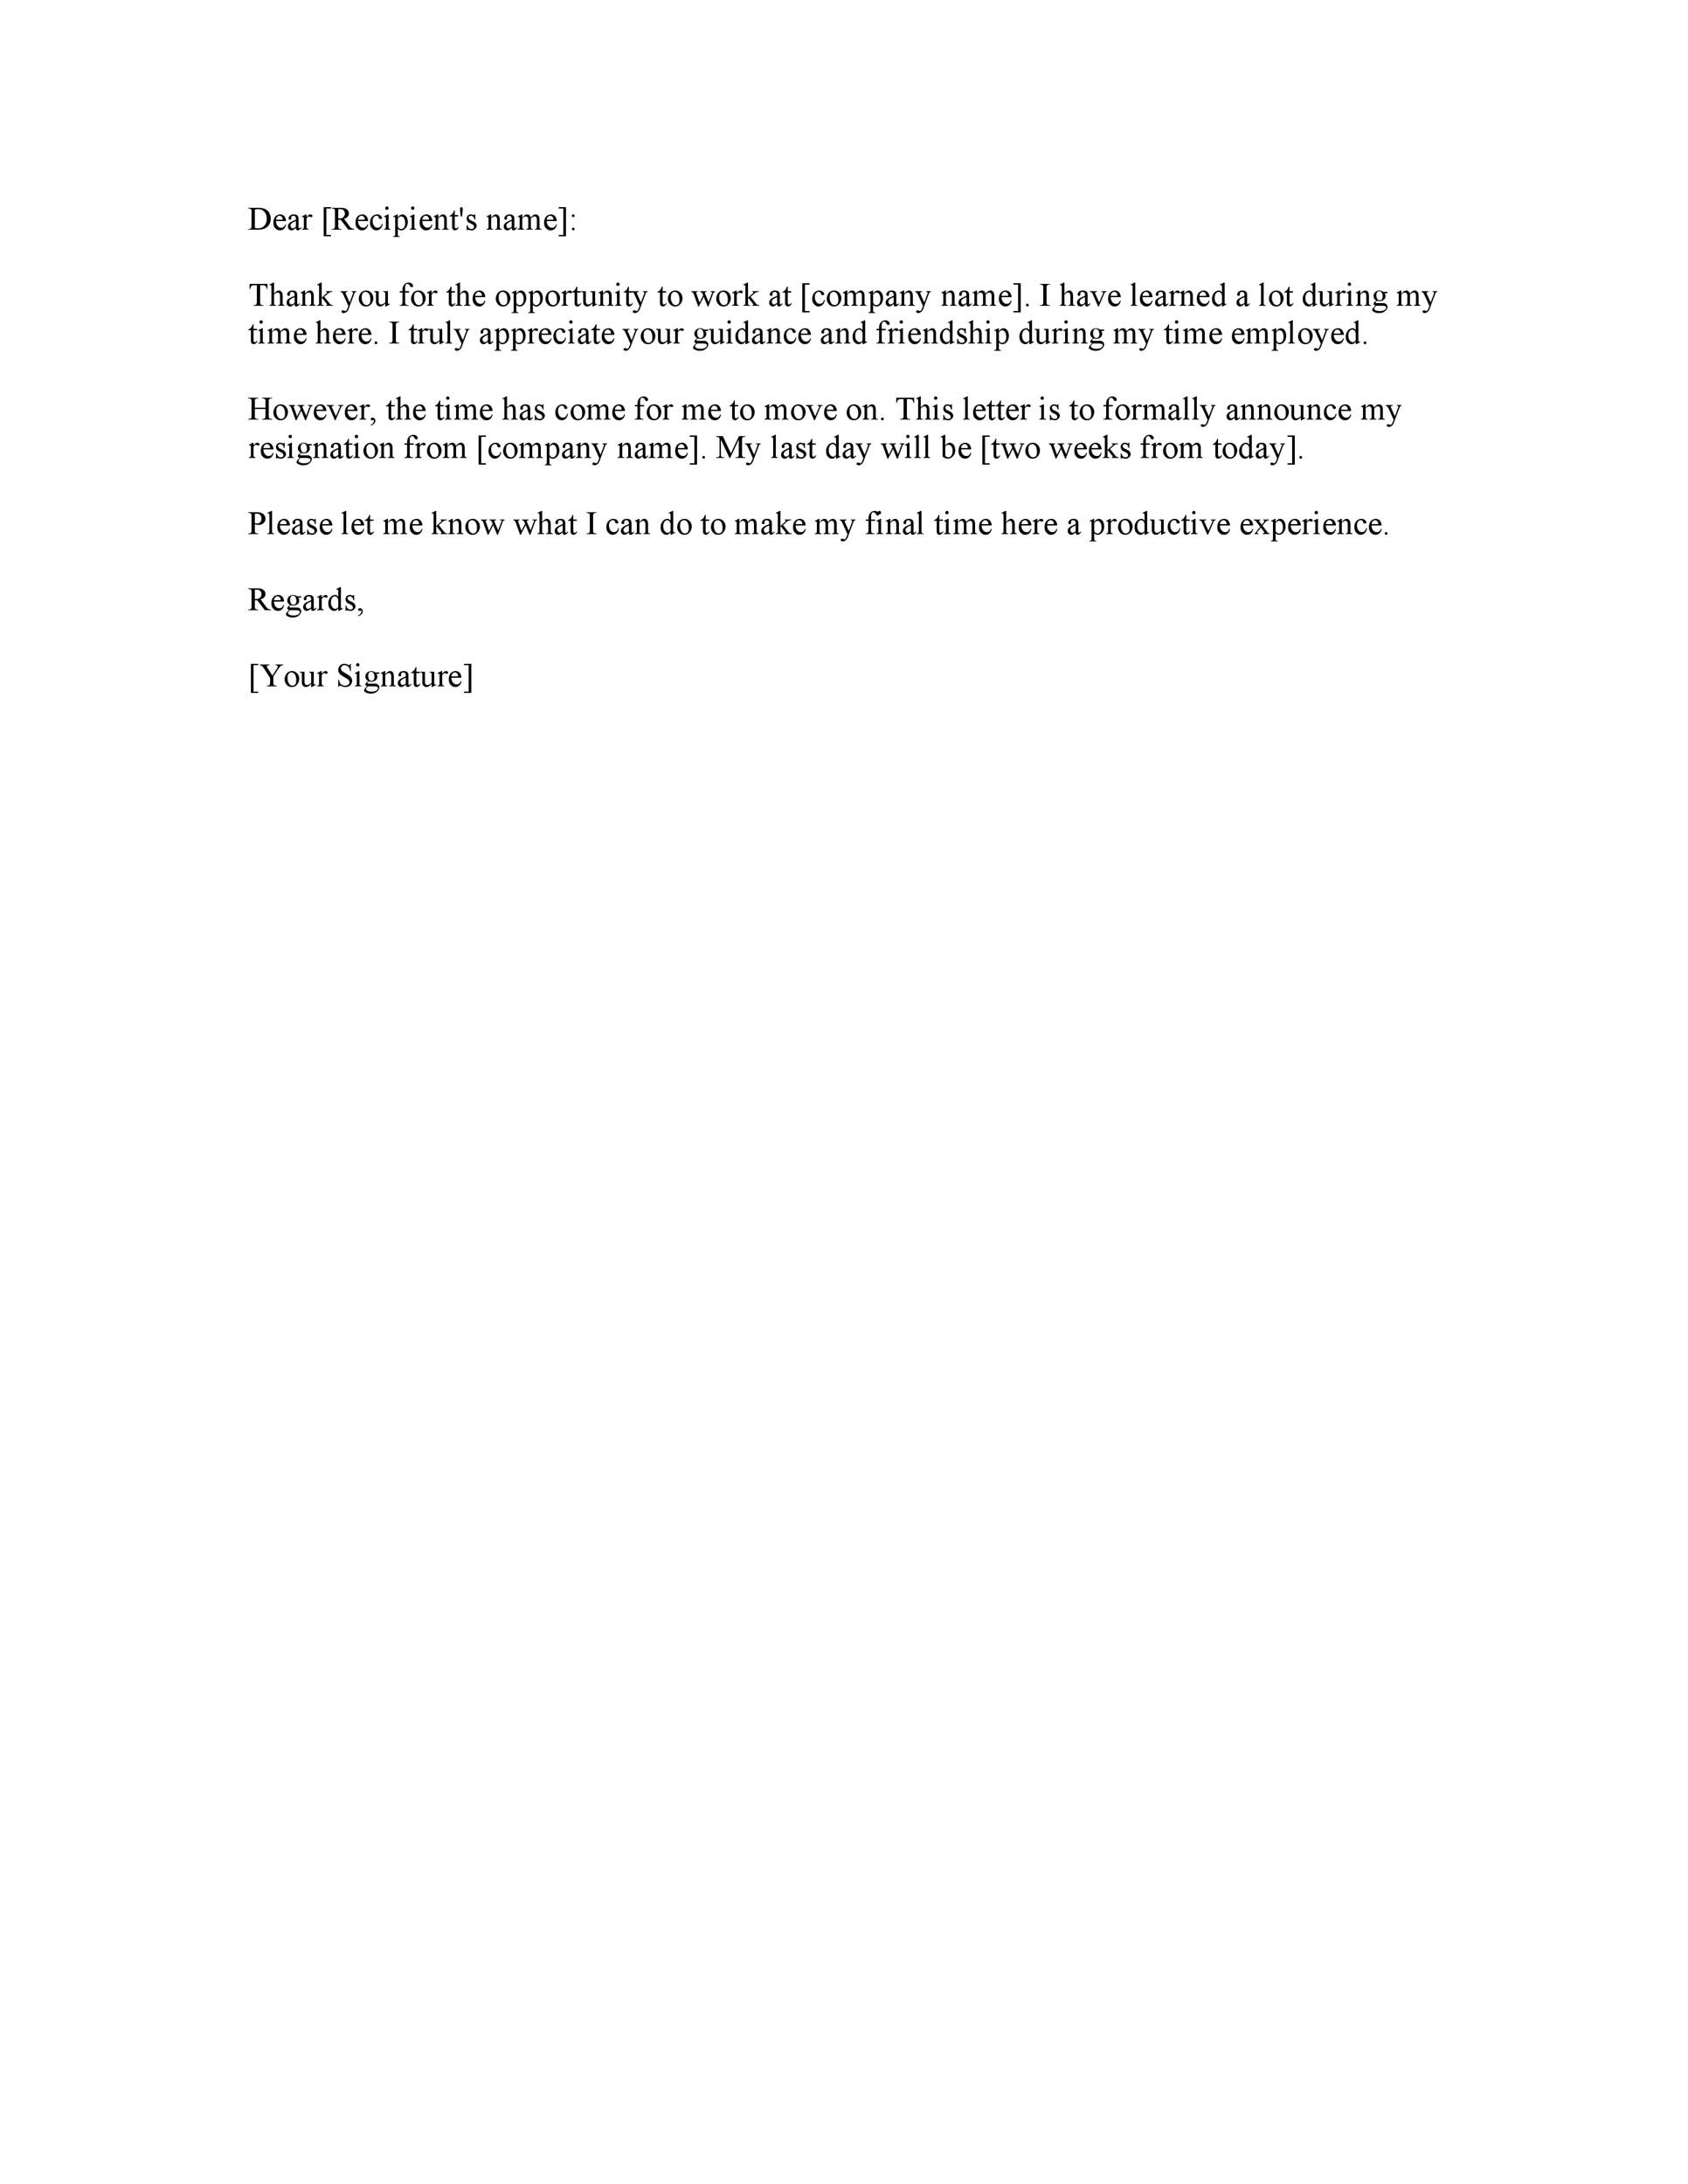 40 Two Weeks Notice Letters  Resignation Letter Templates - resignation letter 2 week notice